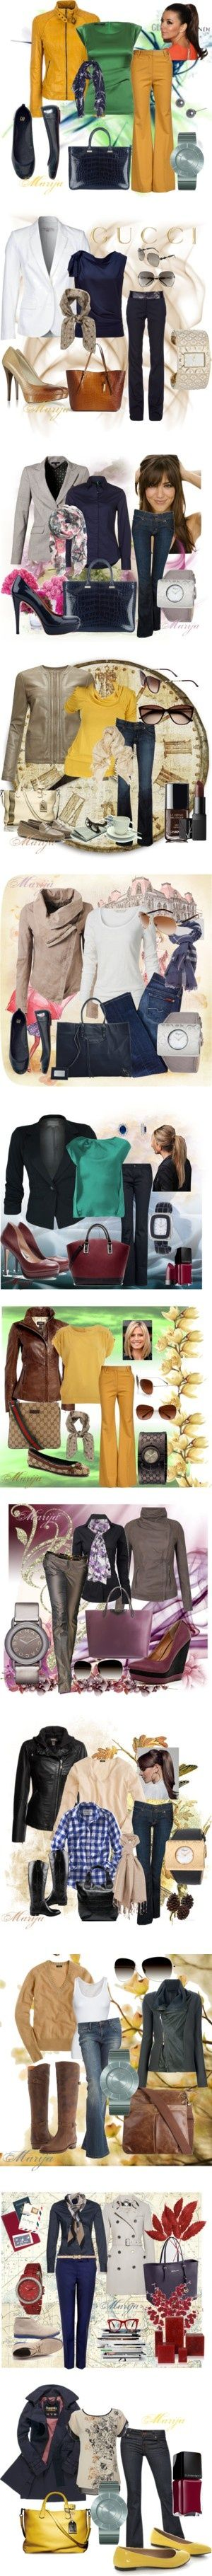 """Bussines woman"" by marija787 ❤ liked on Polyvore"